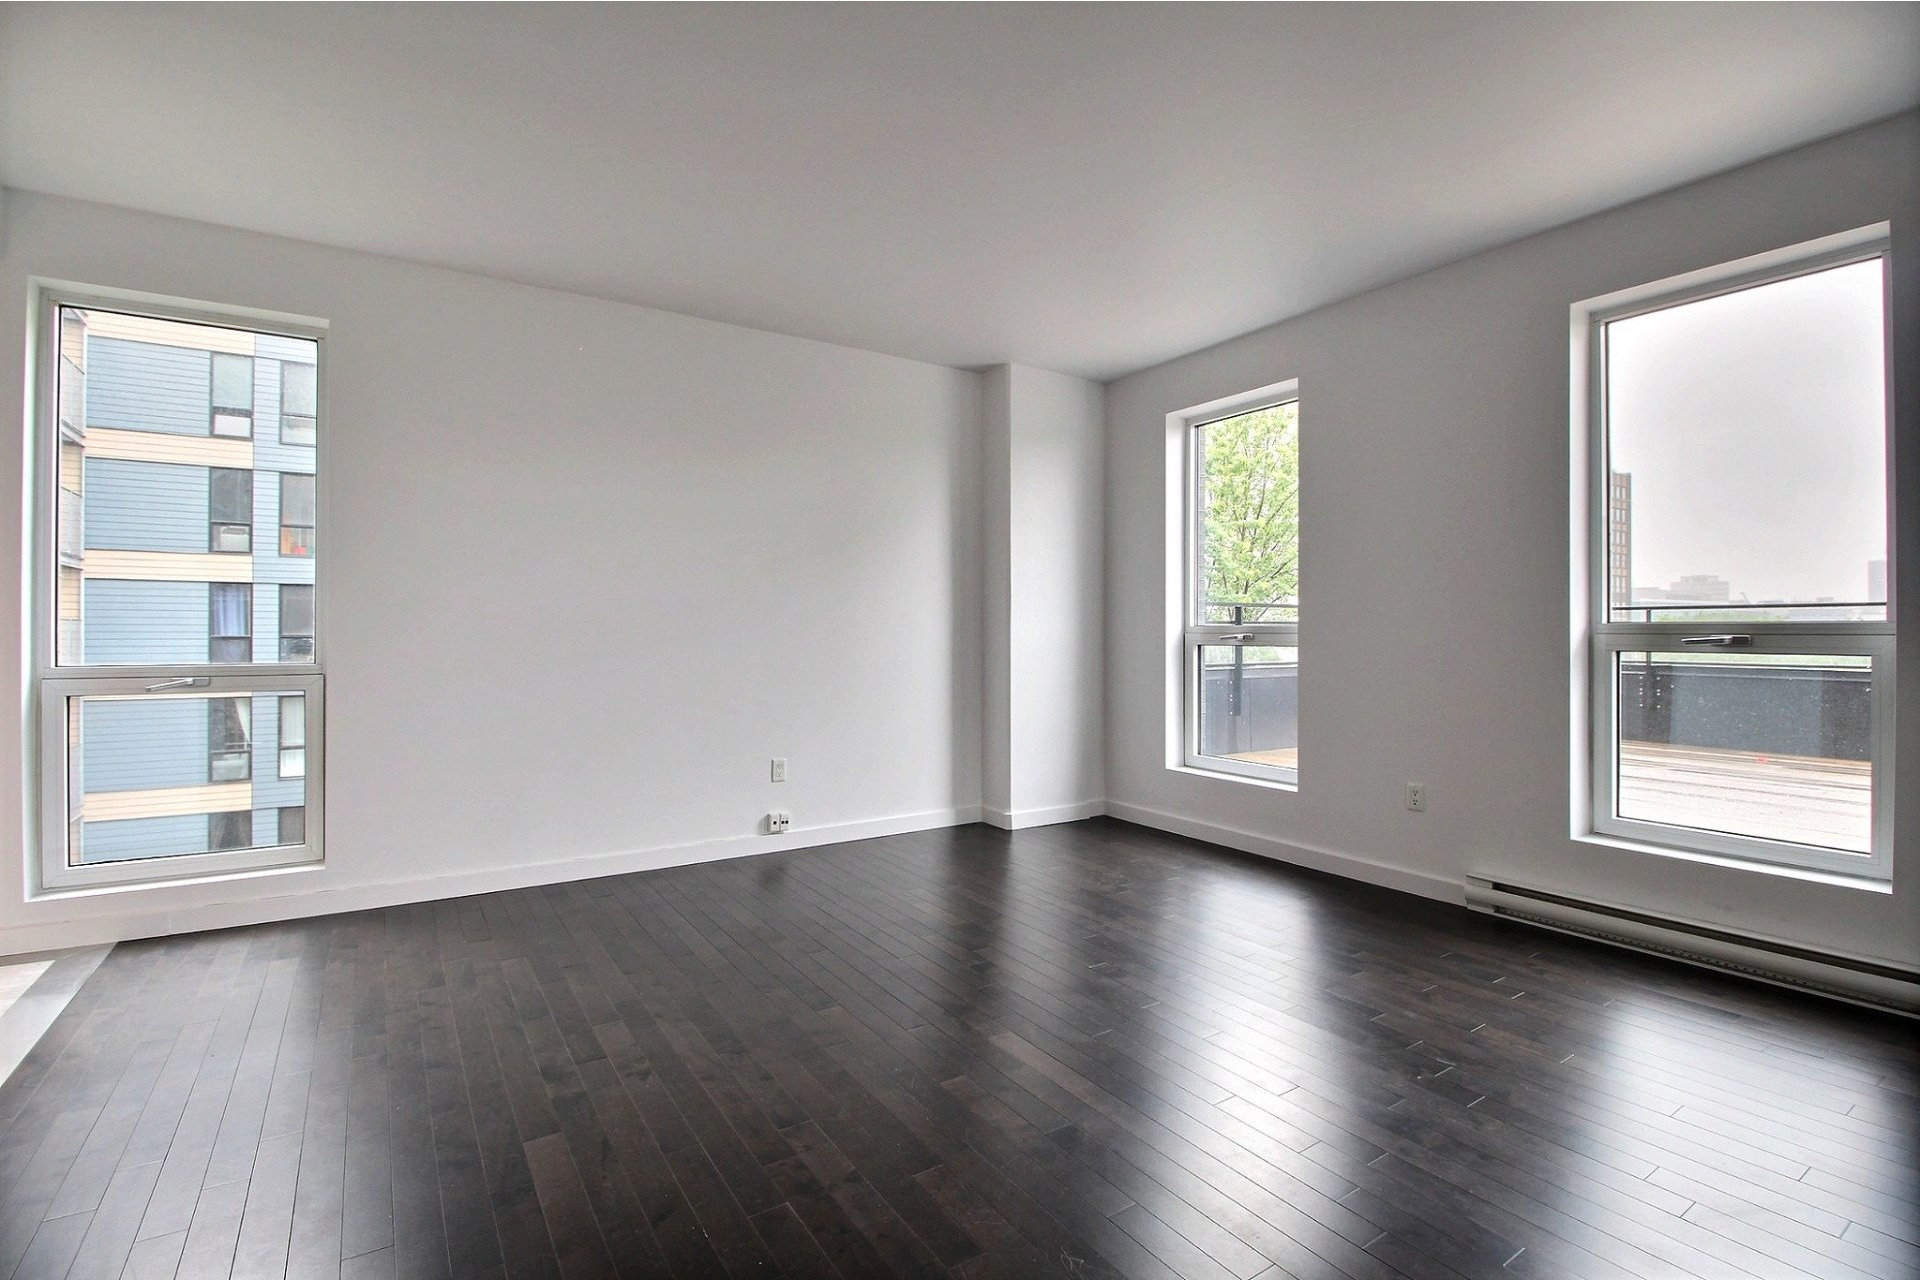 image 17 - Apartment For sale Montréal Ville-Marie  - 5 rooms